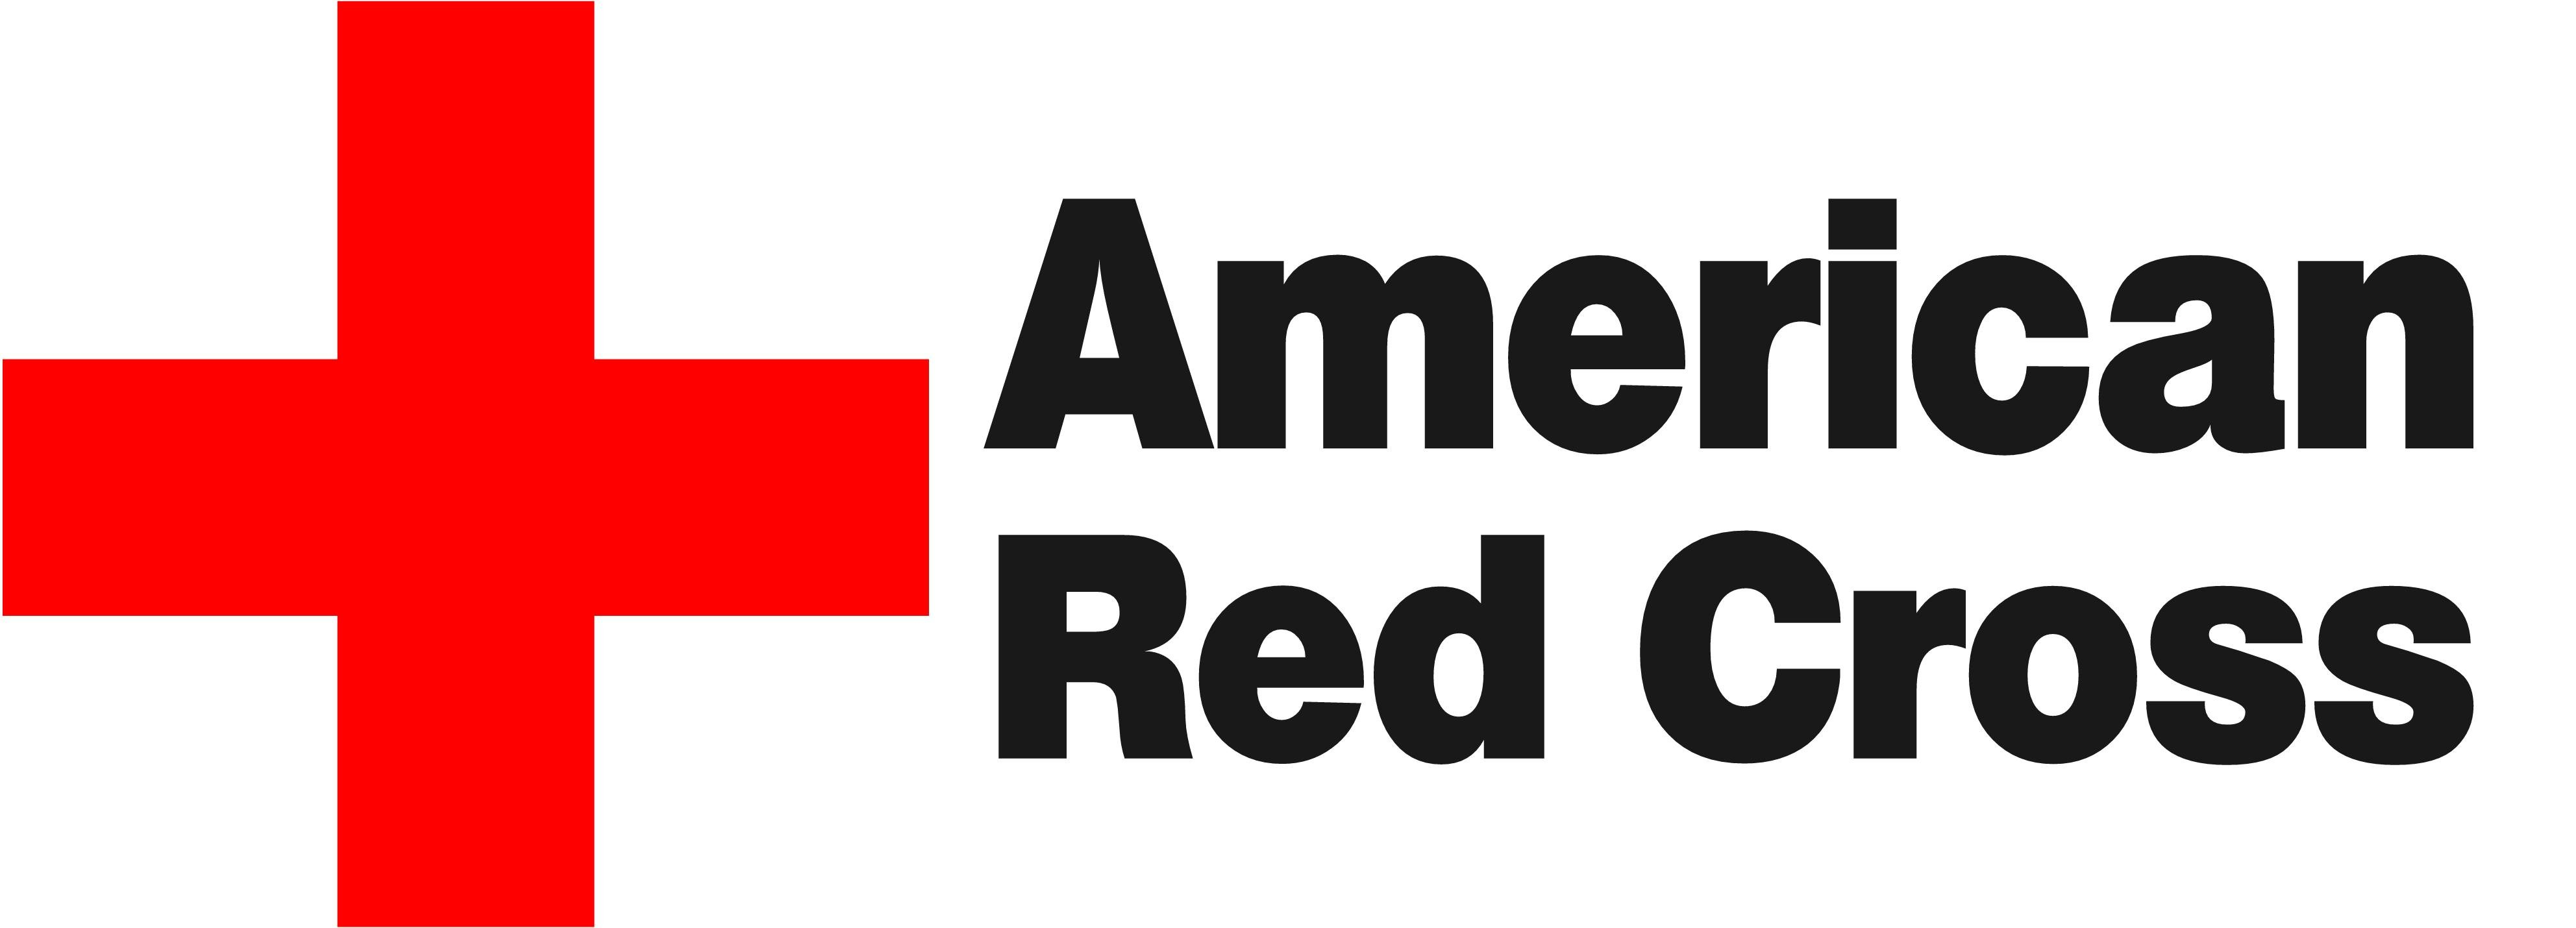 American Red Cross Asking For Blood Donations Amid